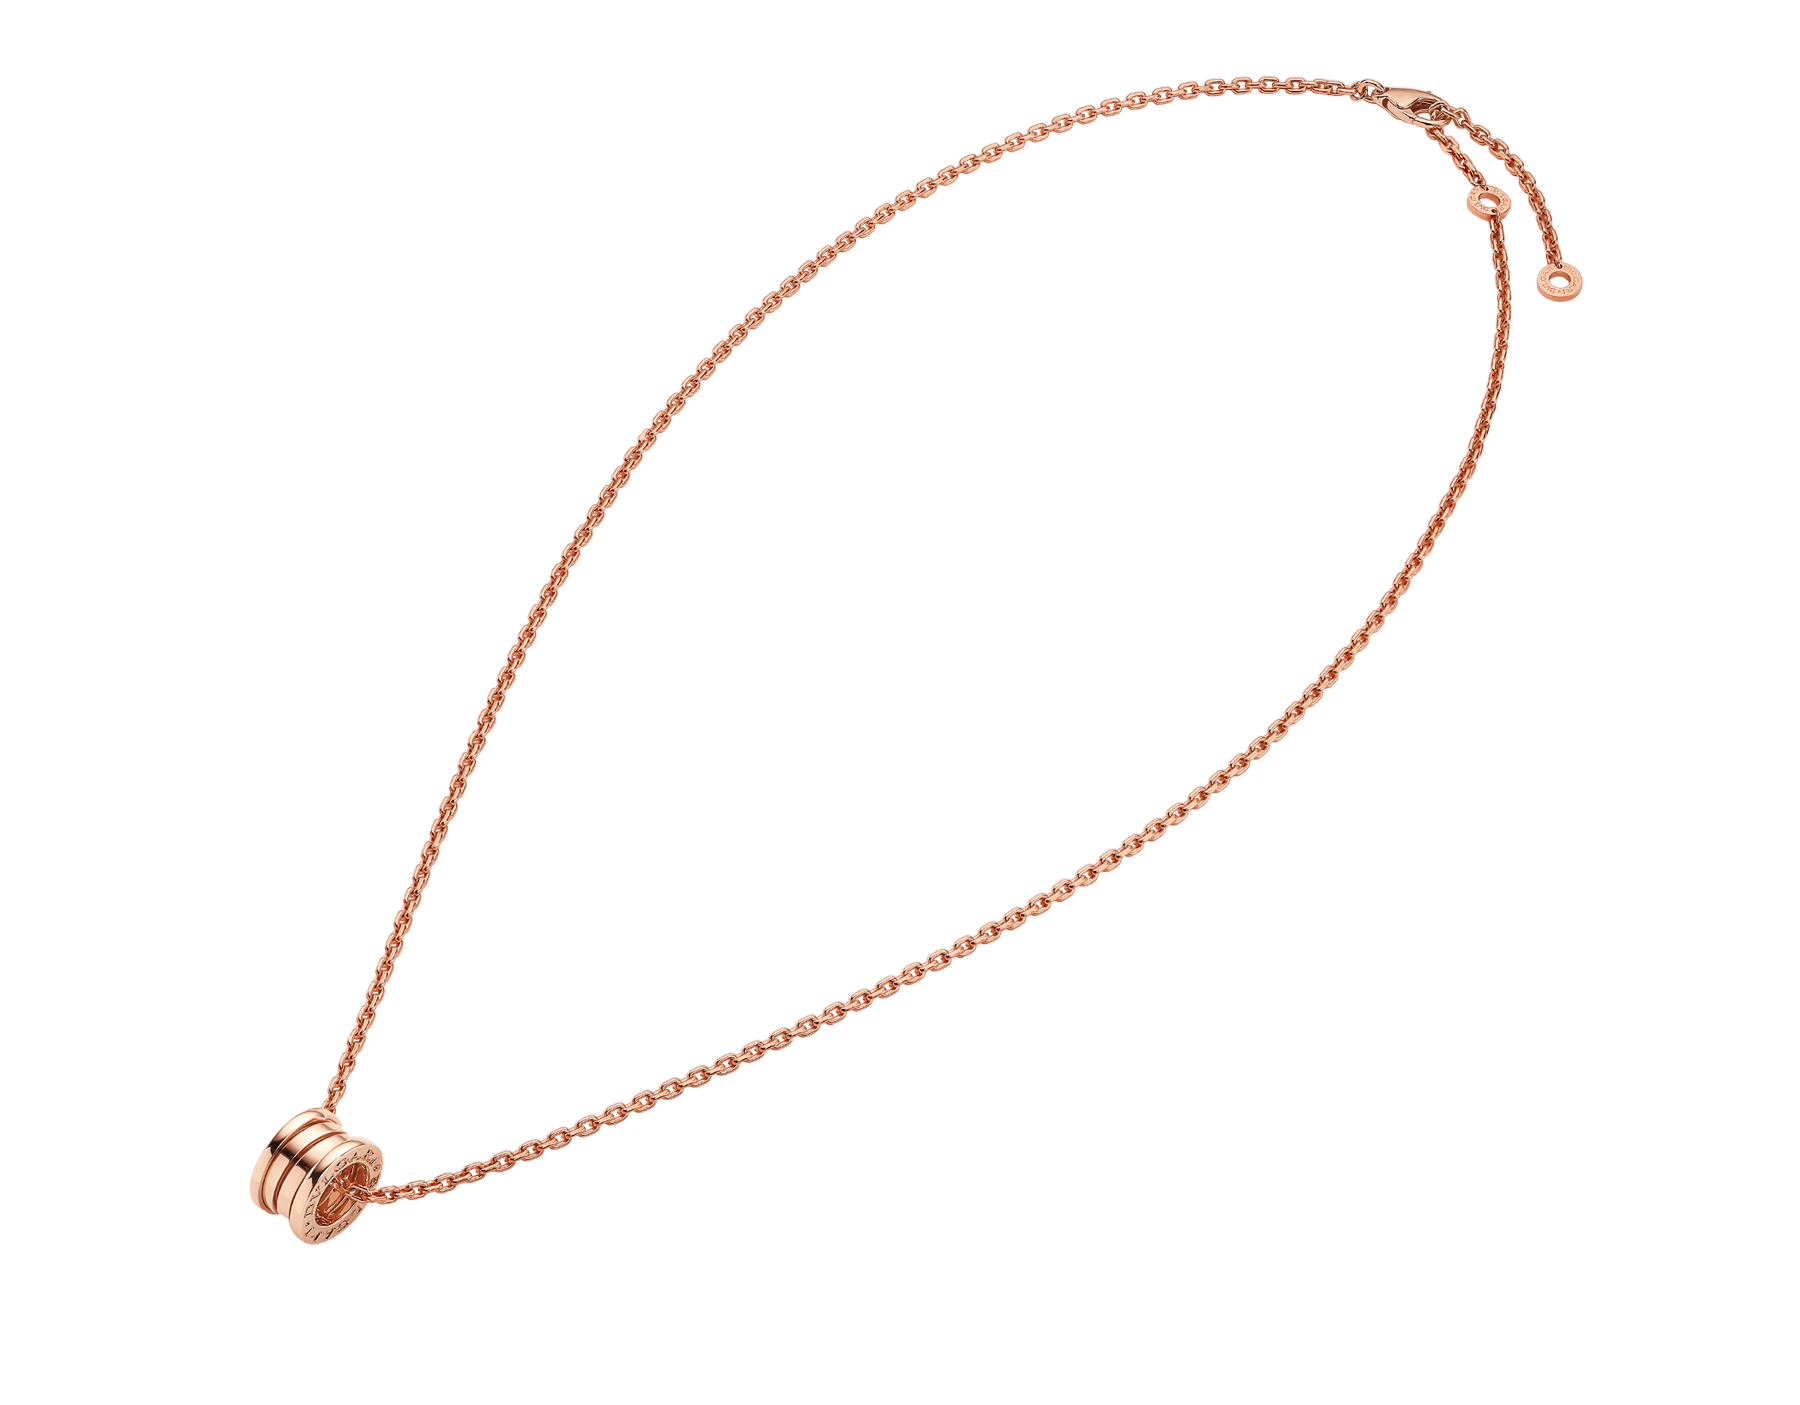 B.zero1 pendant necklace in 18 kt rose gold 358348 image 2